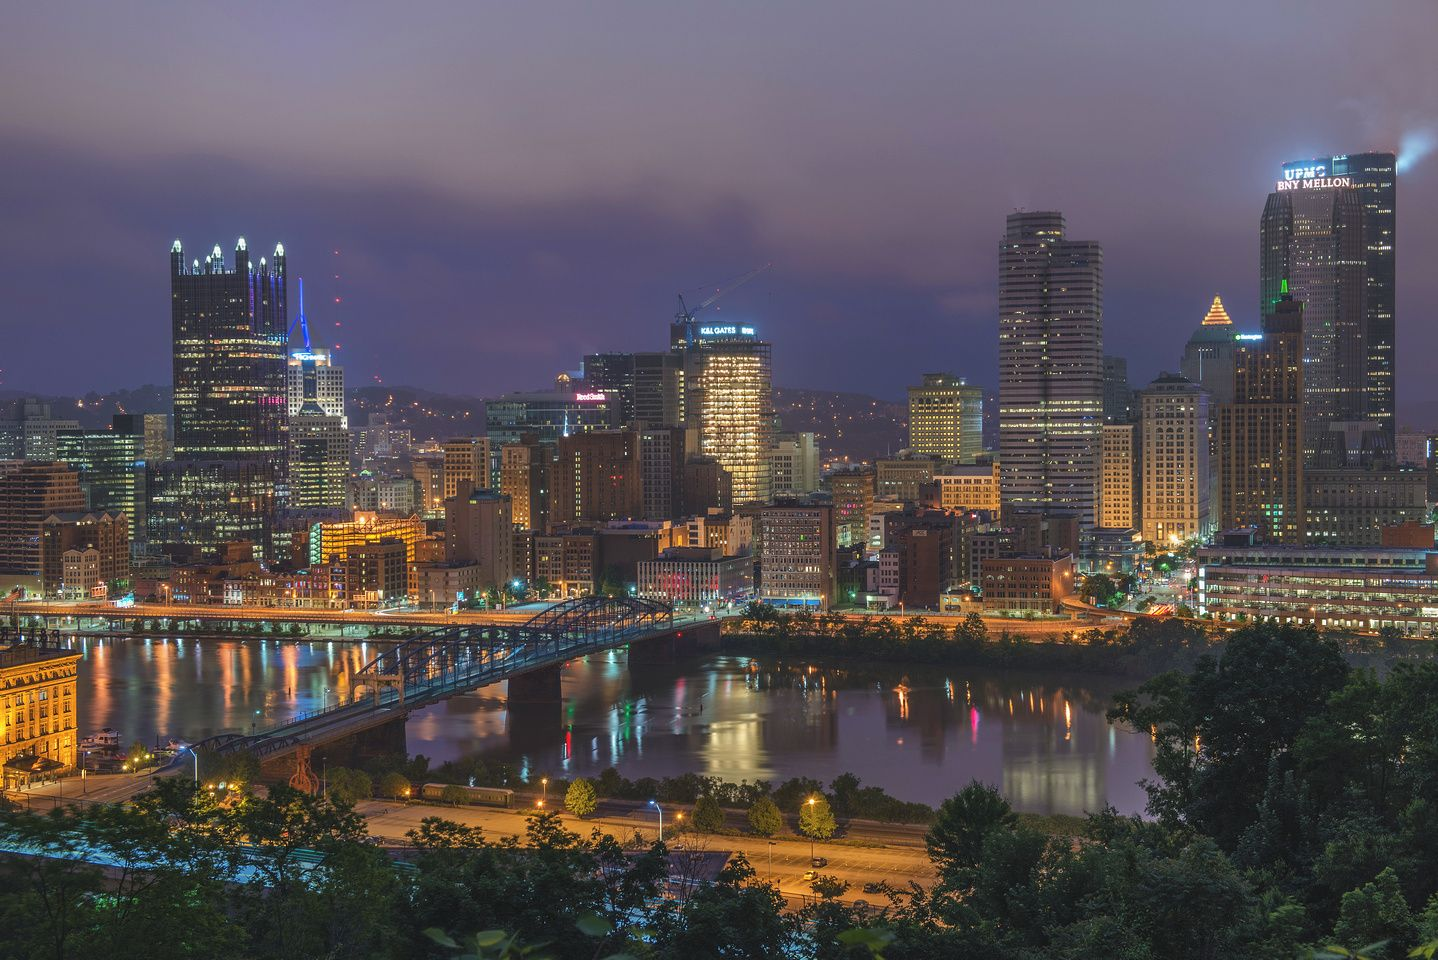 Close view of the Pittsburgh skyline before sunrise